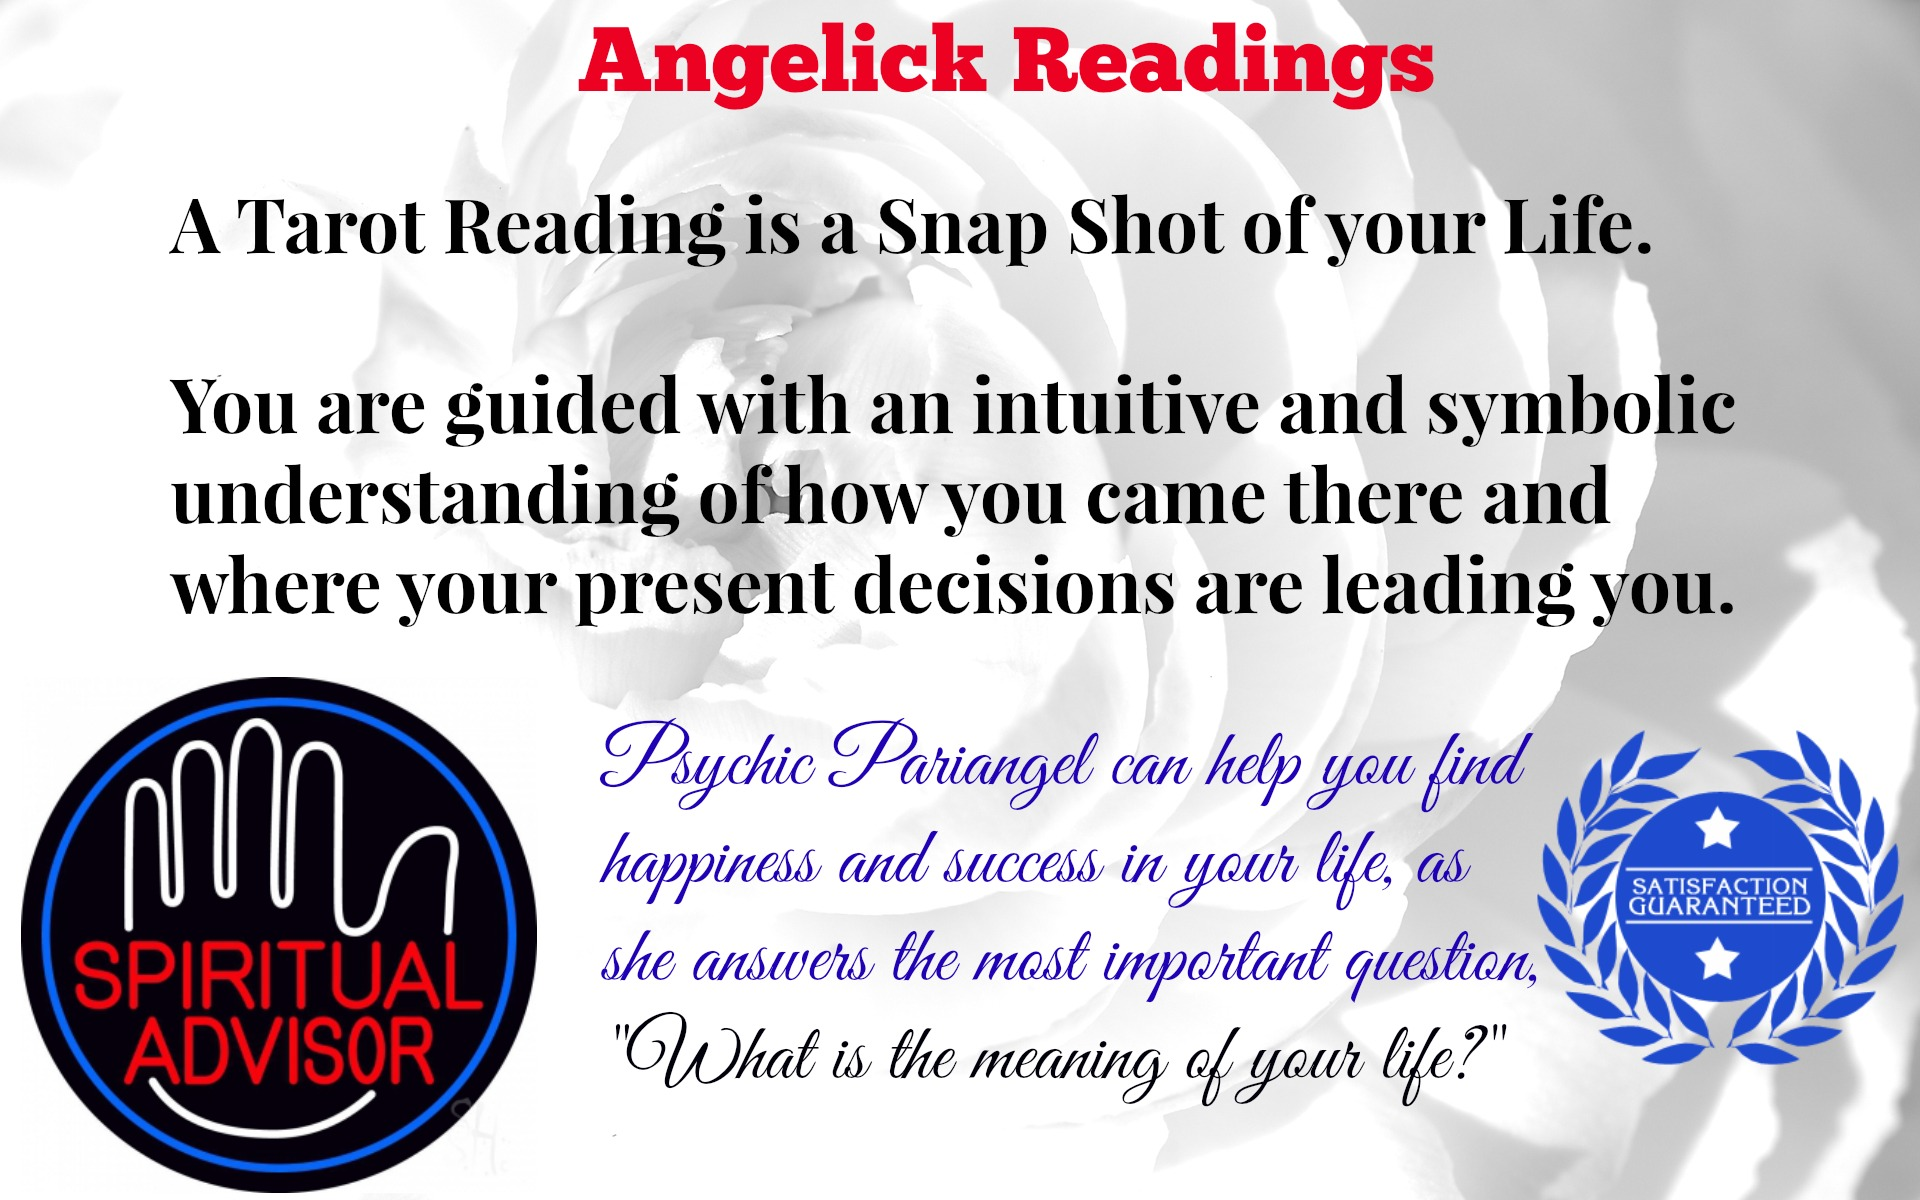 give you a Past Life Karmic Reading with FREE Healing Session